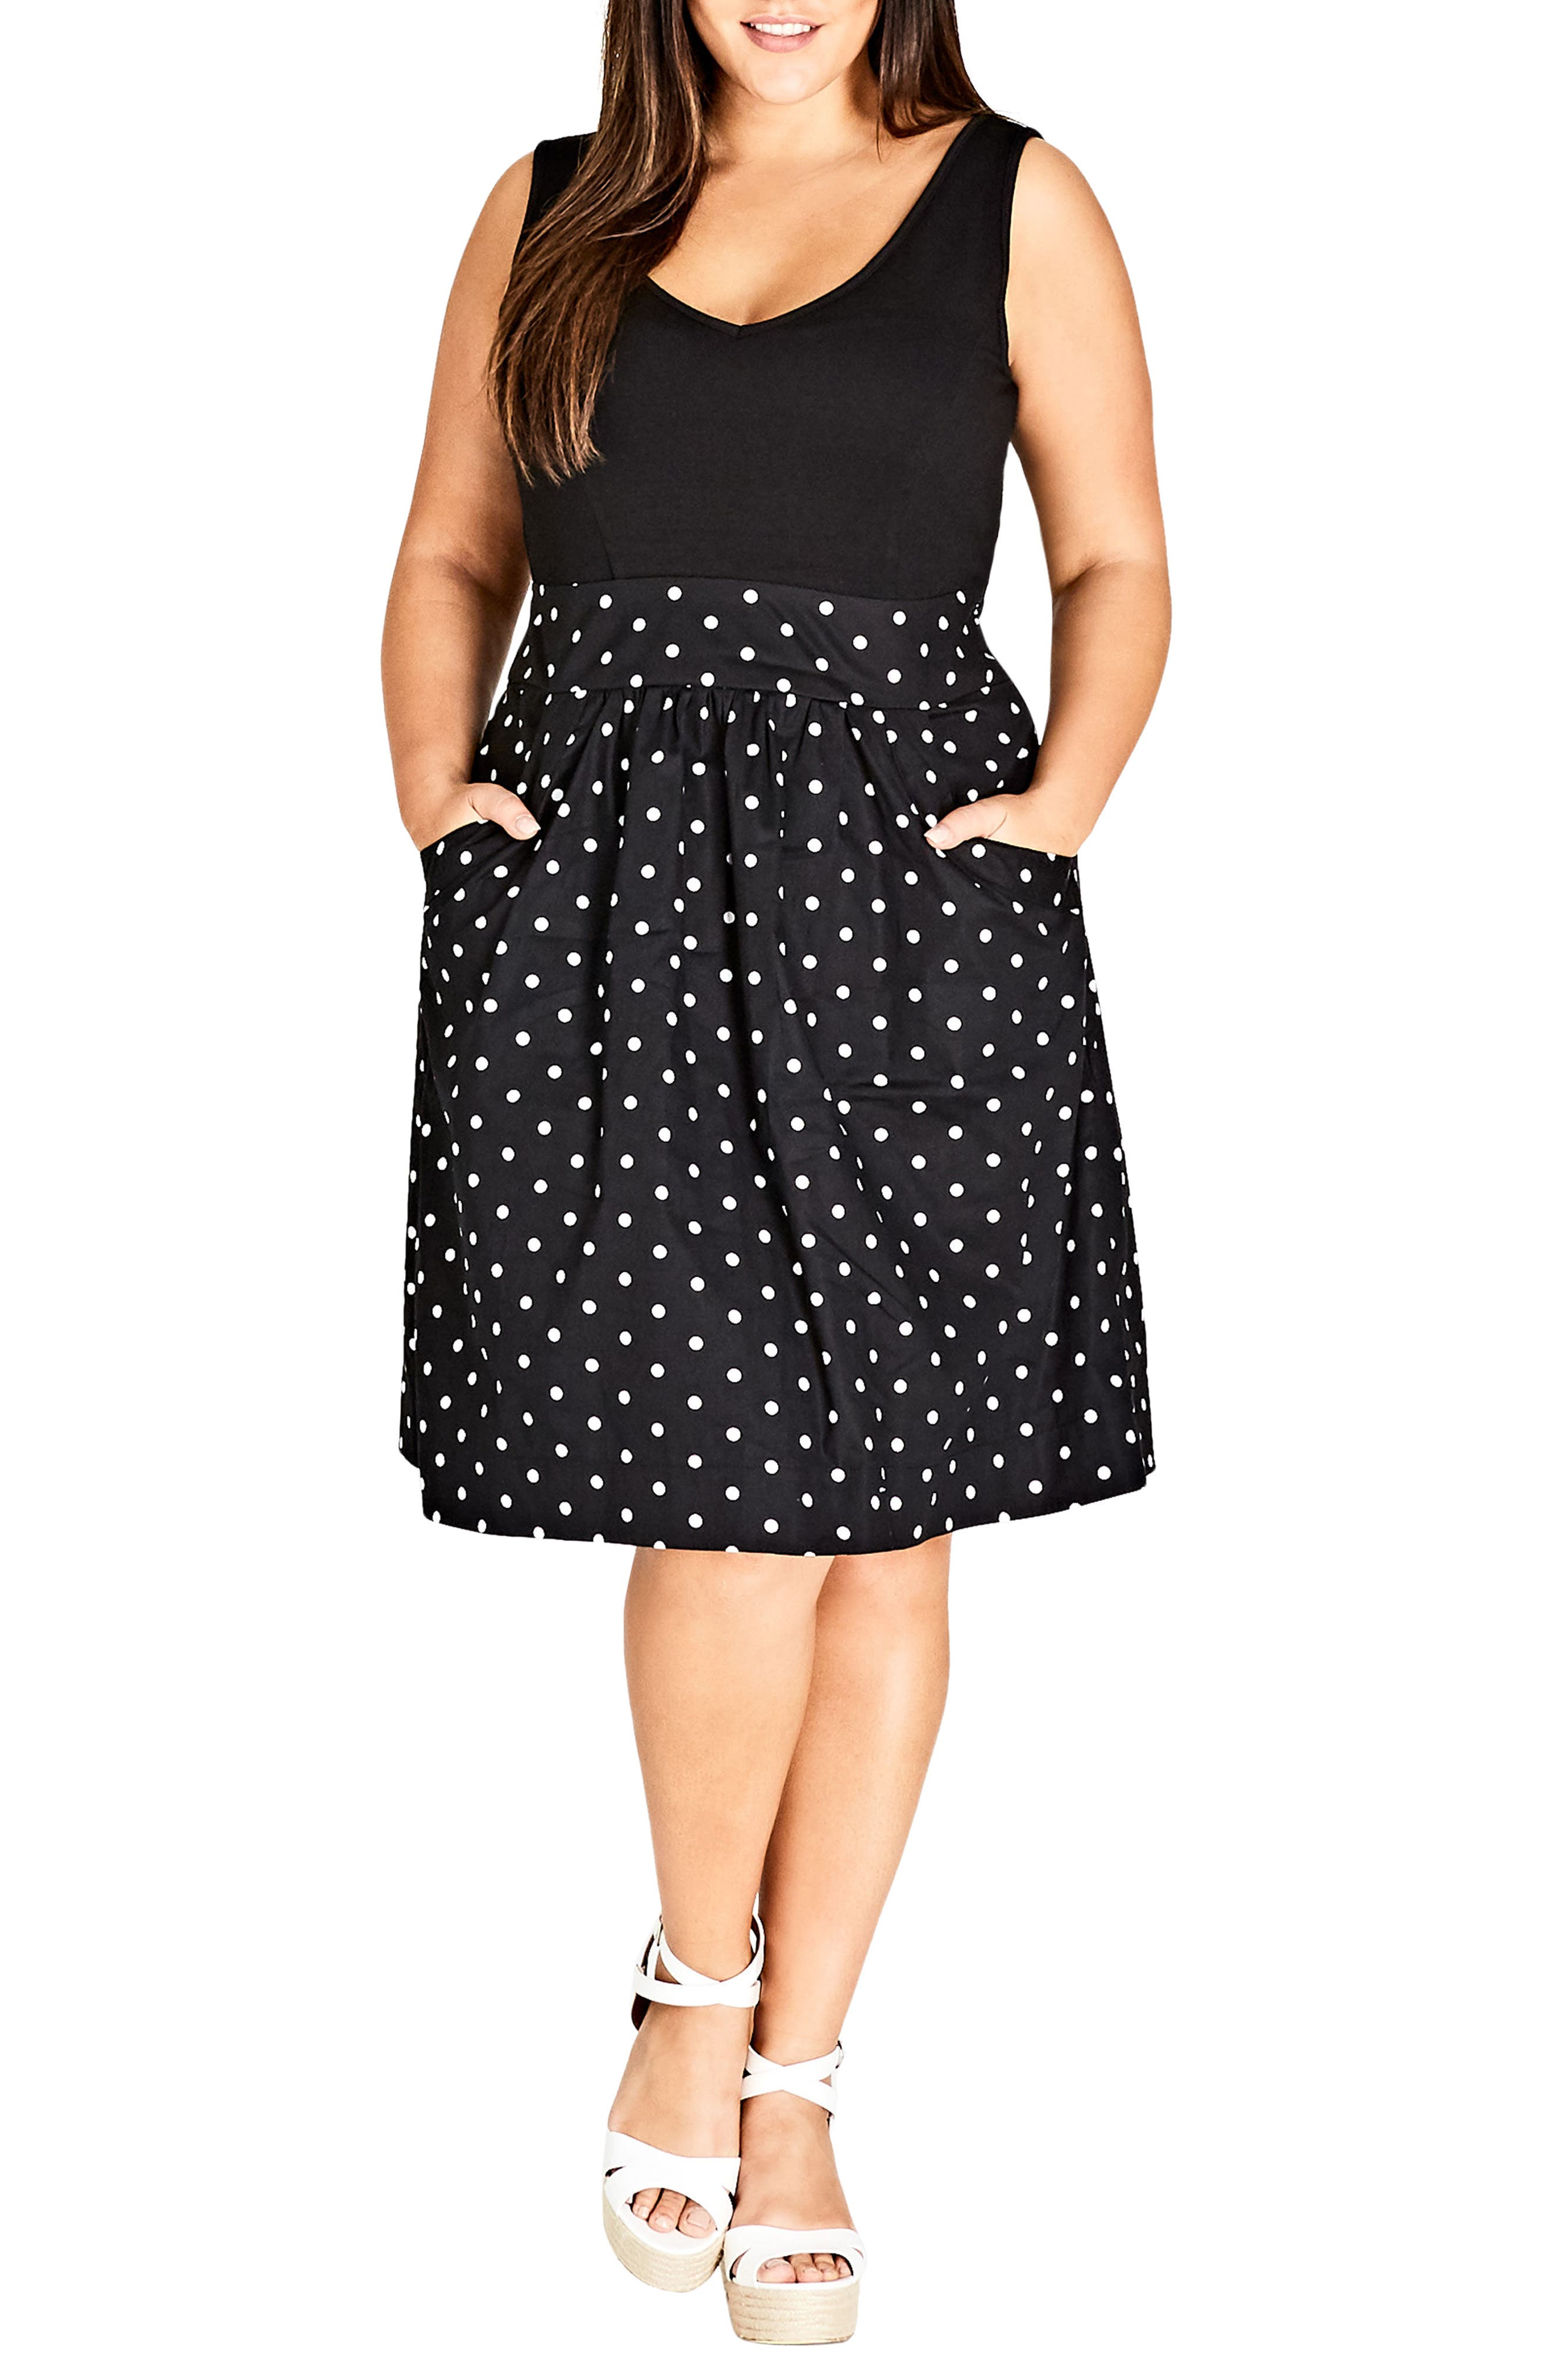 Simply Sweet Fit & Flare Dress,                         Main,                         color, 001